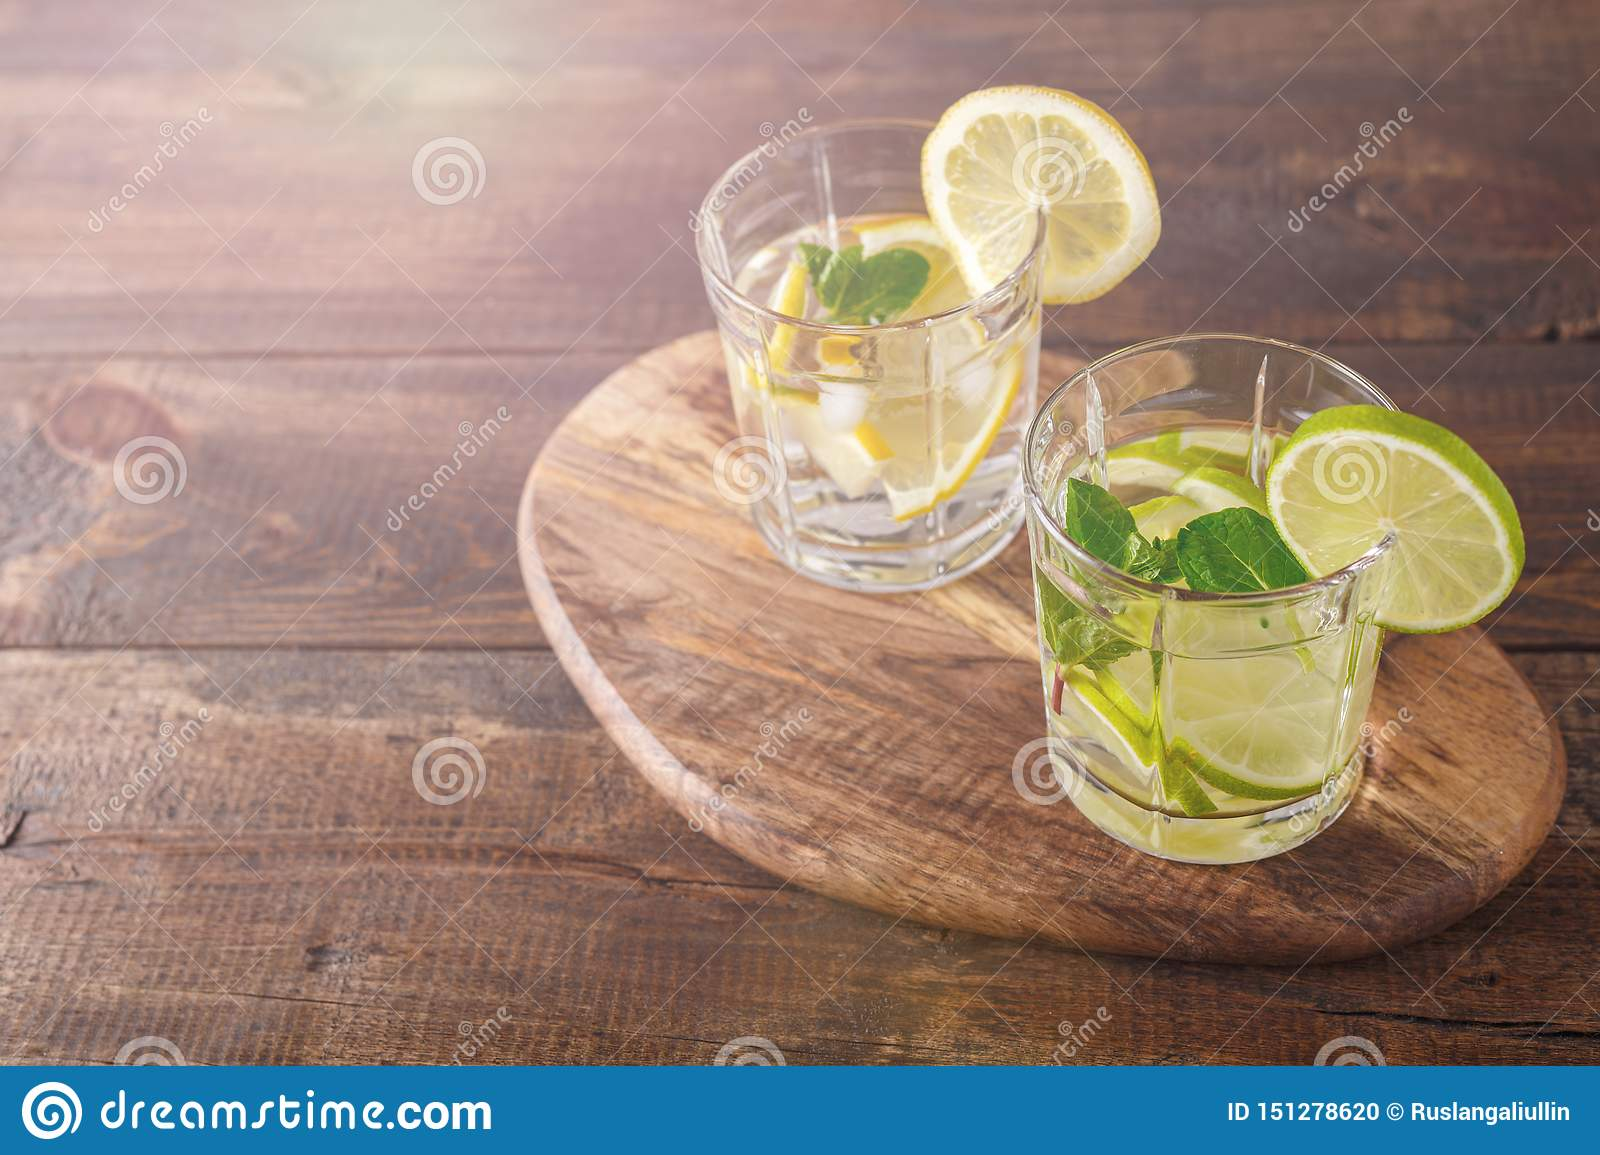 Two glasses with a summer cocktail of lemon, lime, mint and ice on a wooden Board with a copy of the space